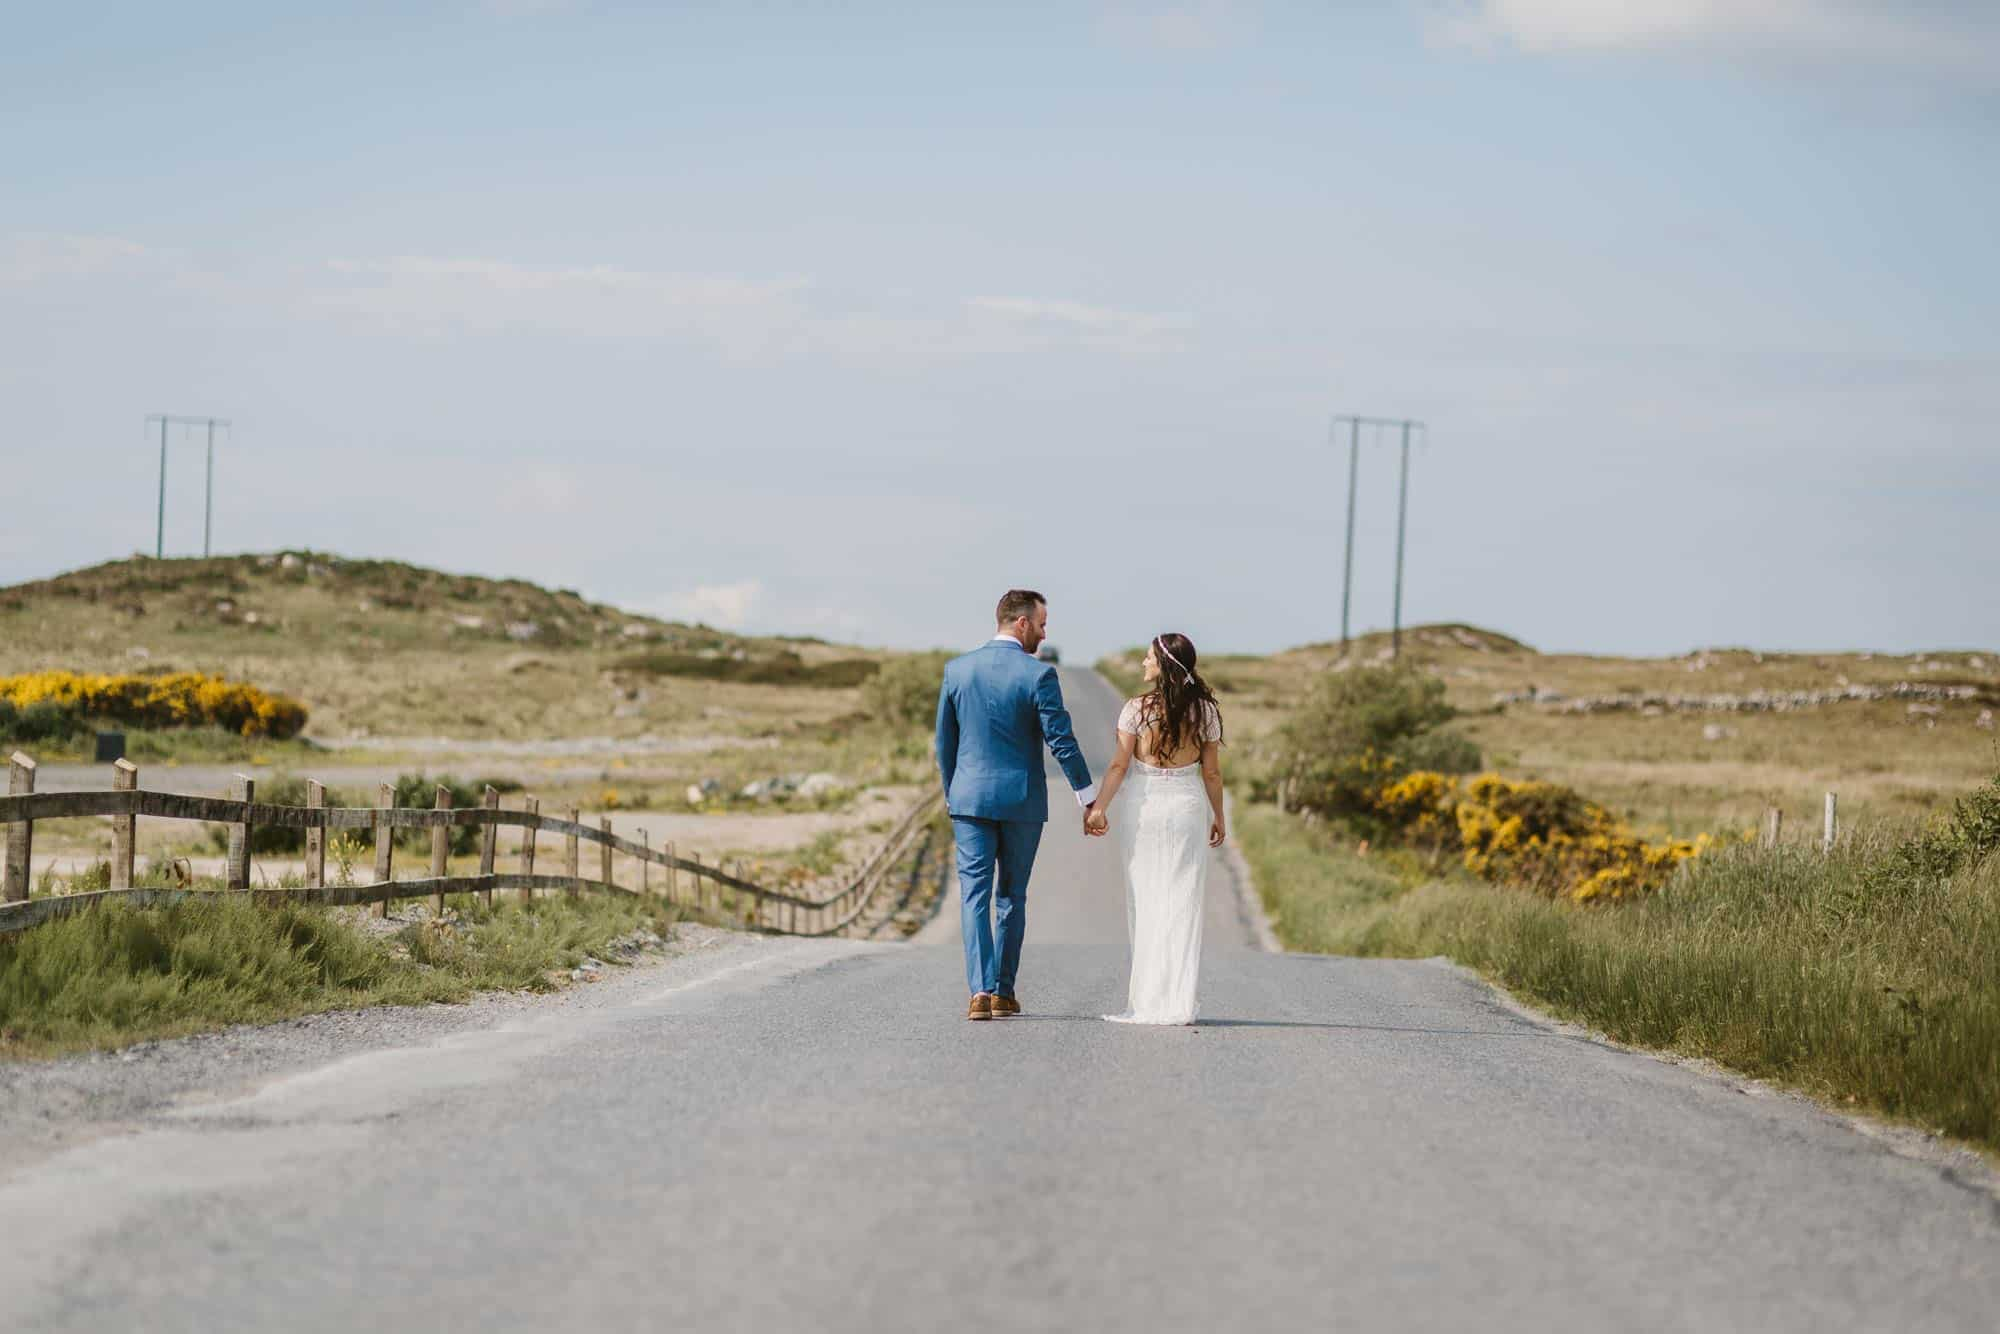 Elopement videographer Ireland, couple walking on a country road